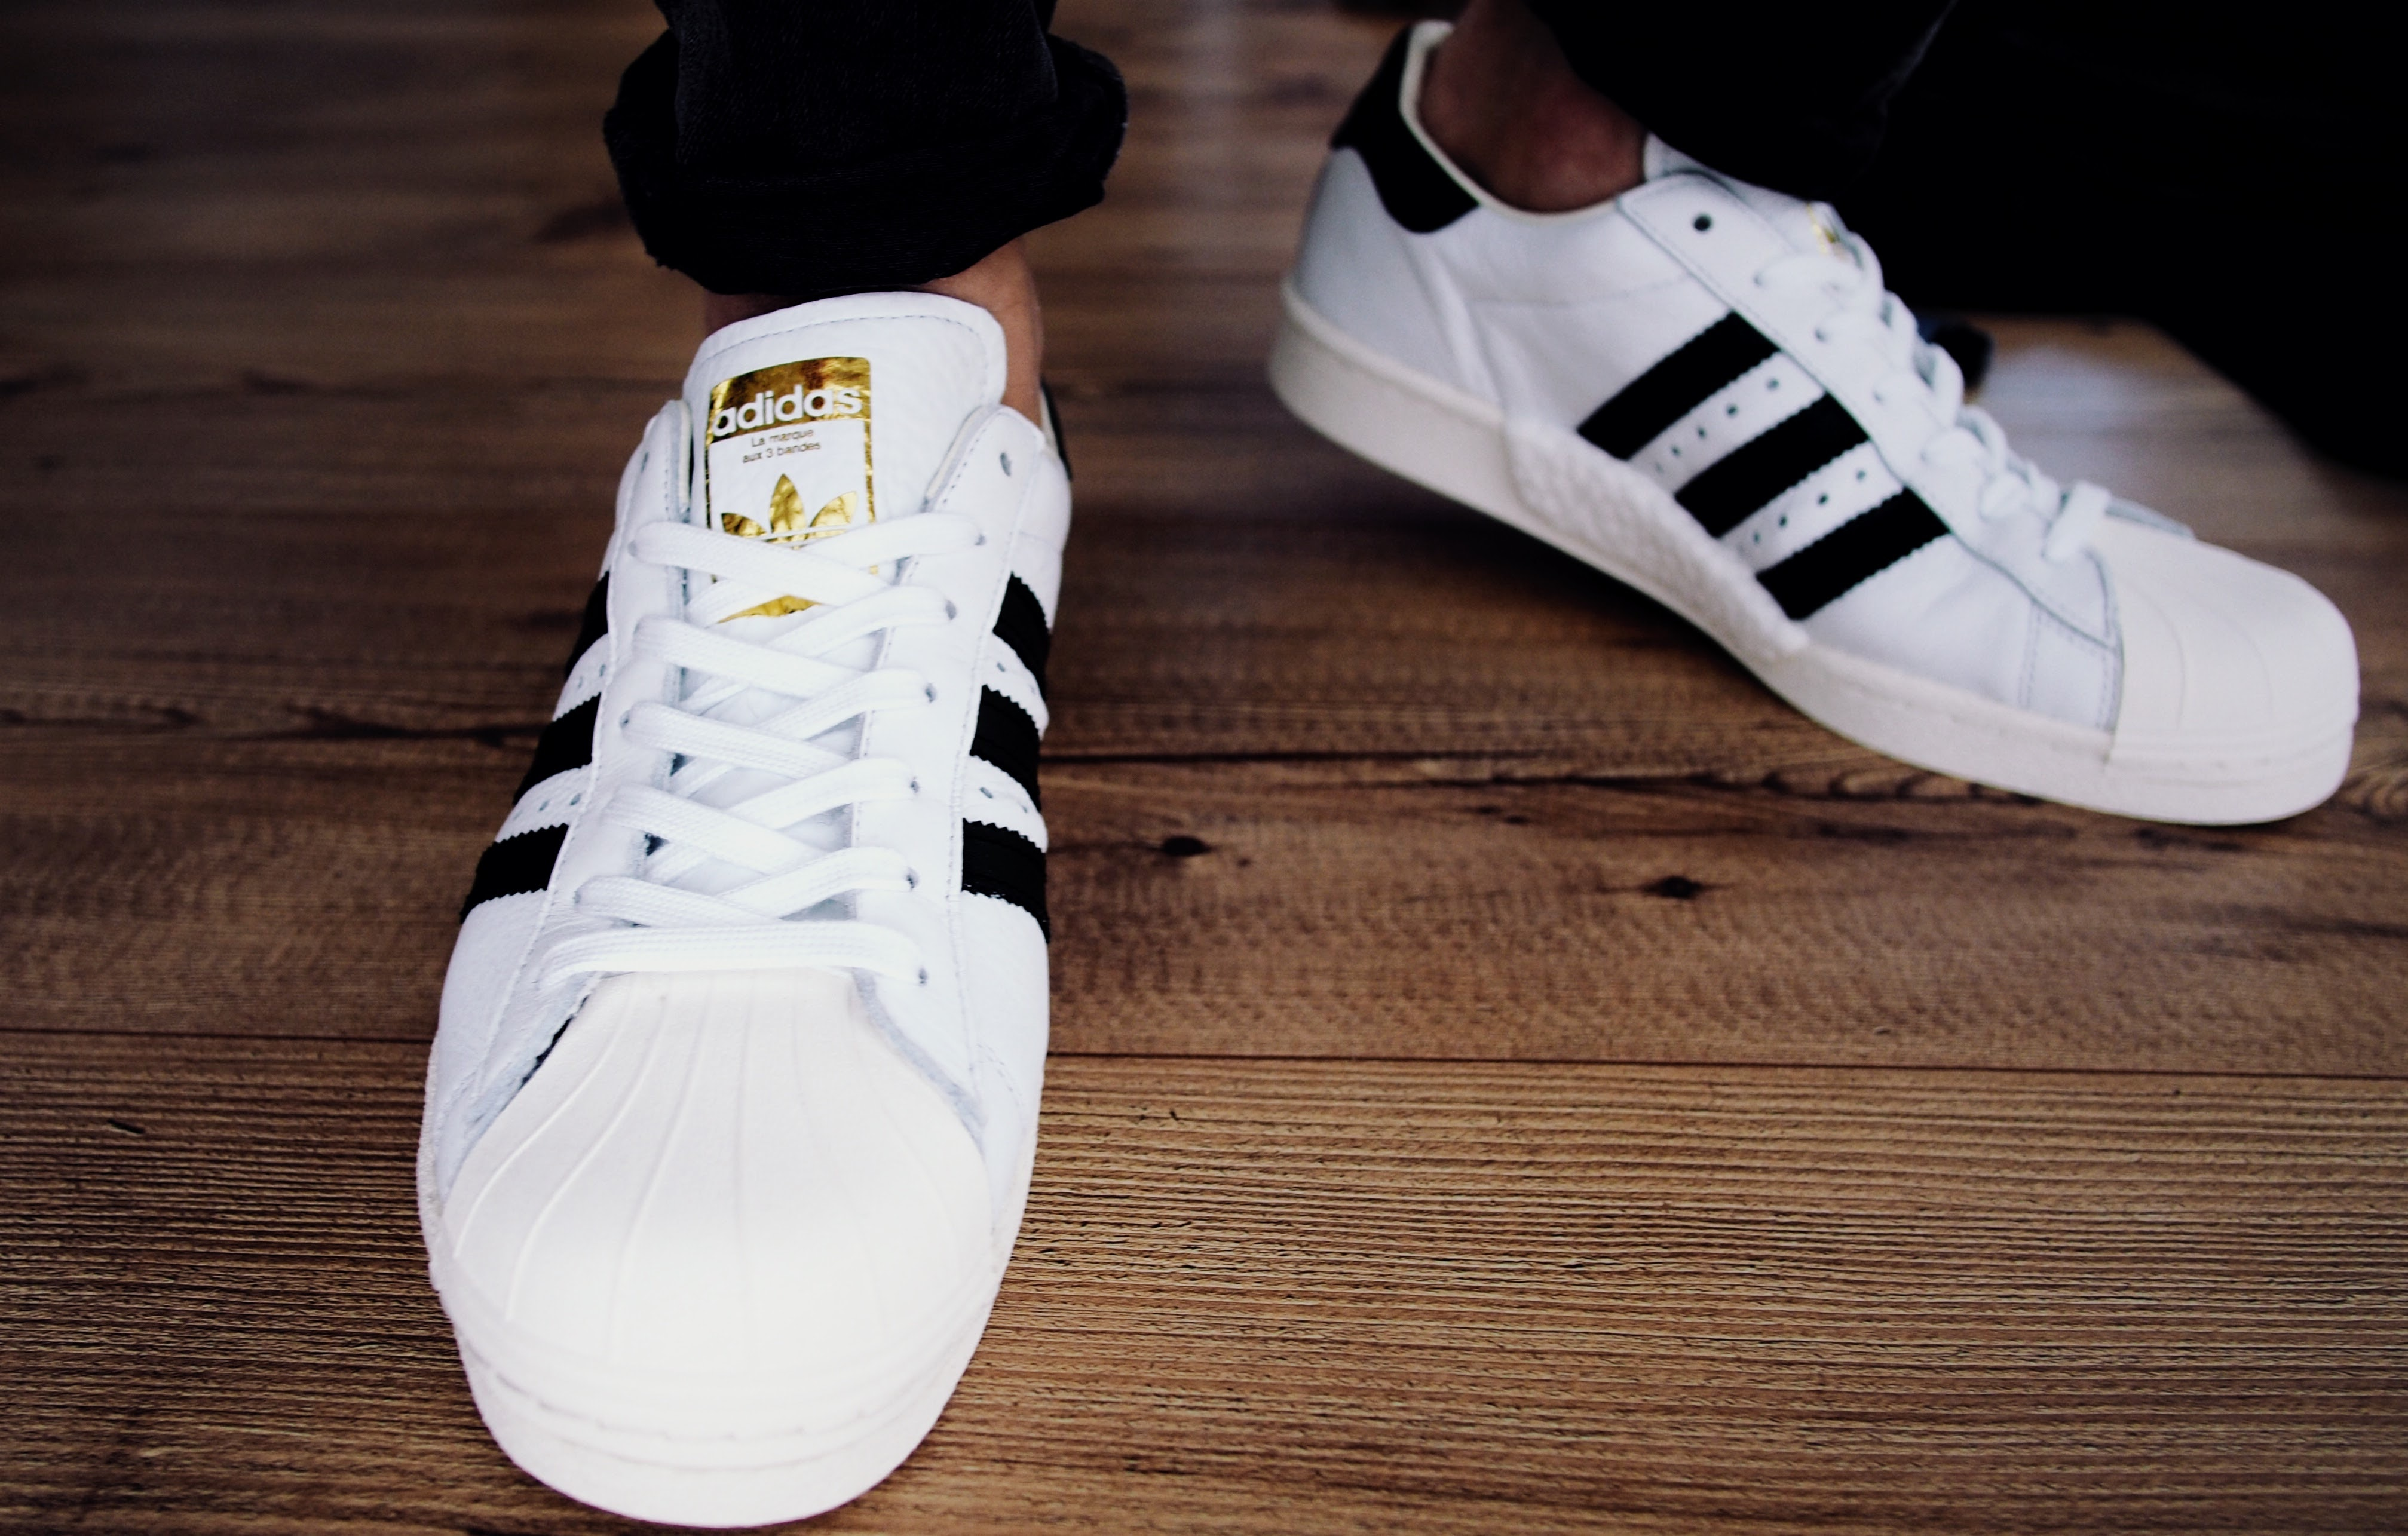 The Revival of the Adidas Superstars